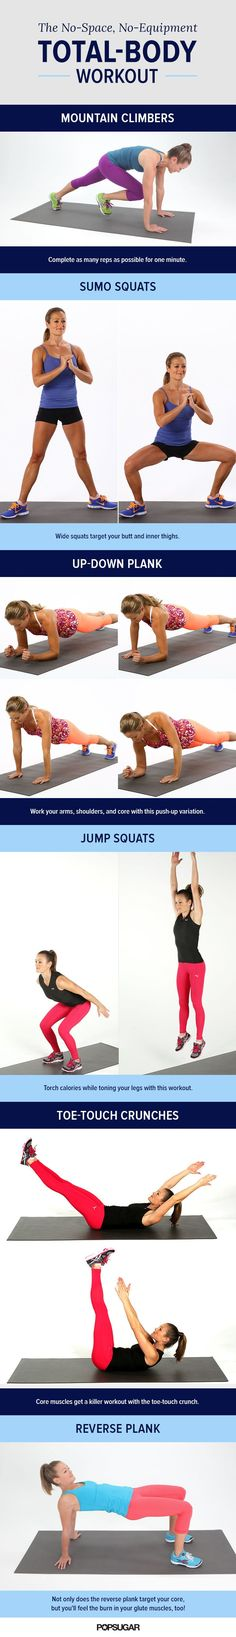 Don't have a gym membership? Don't worry! This total body workout routine will take you through exercises, like squats and planks, to tone up without equipment.                                                                                                                                                     More